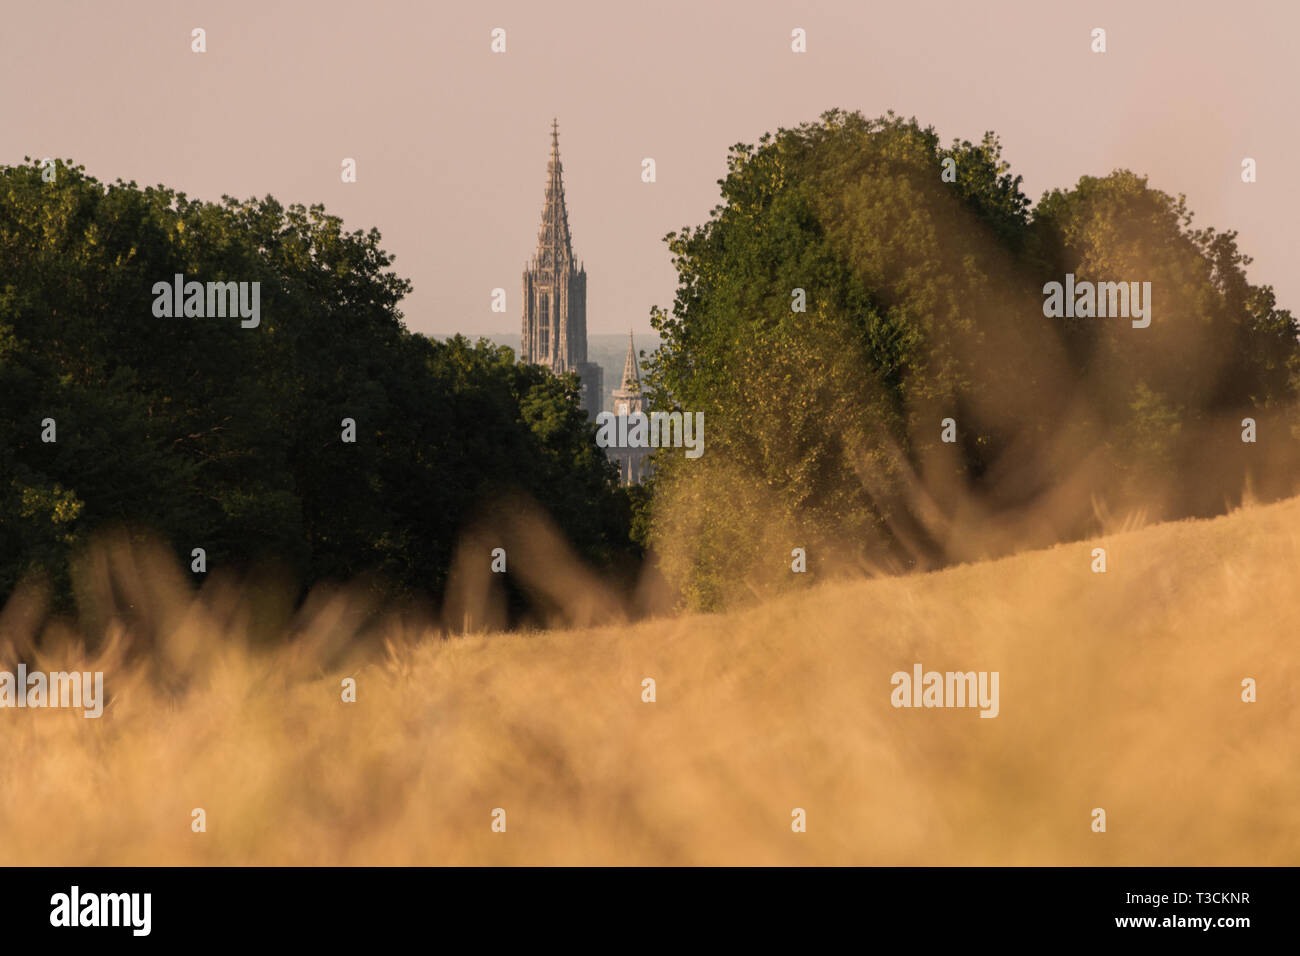 A yellow wheat field in the summer. The minster of ulm is visible in the background Stock Photo